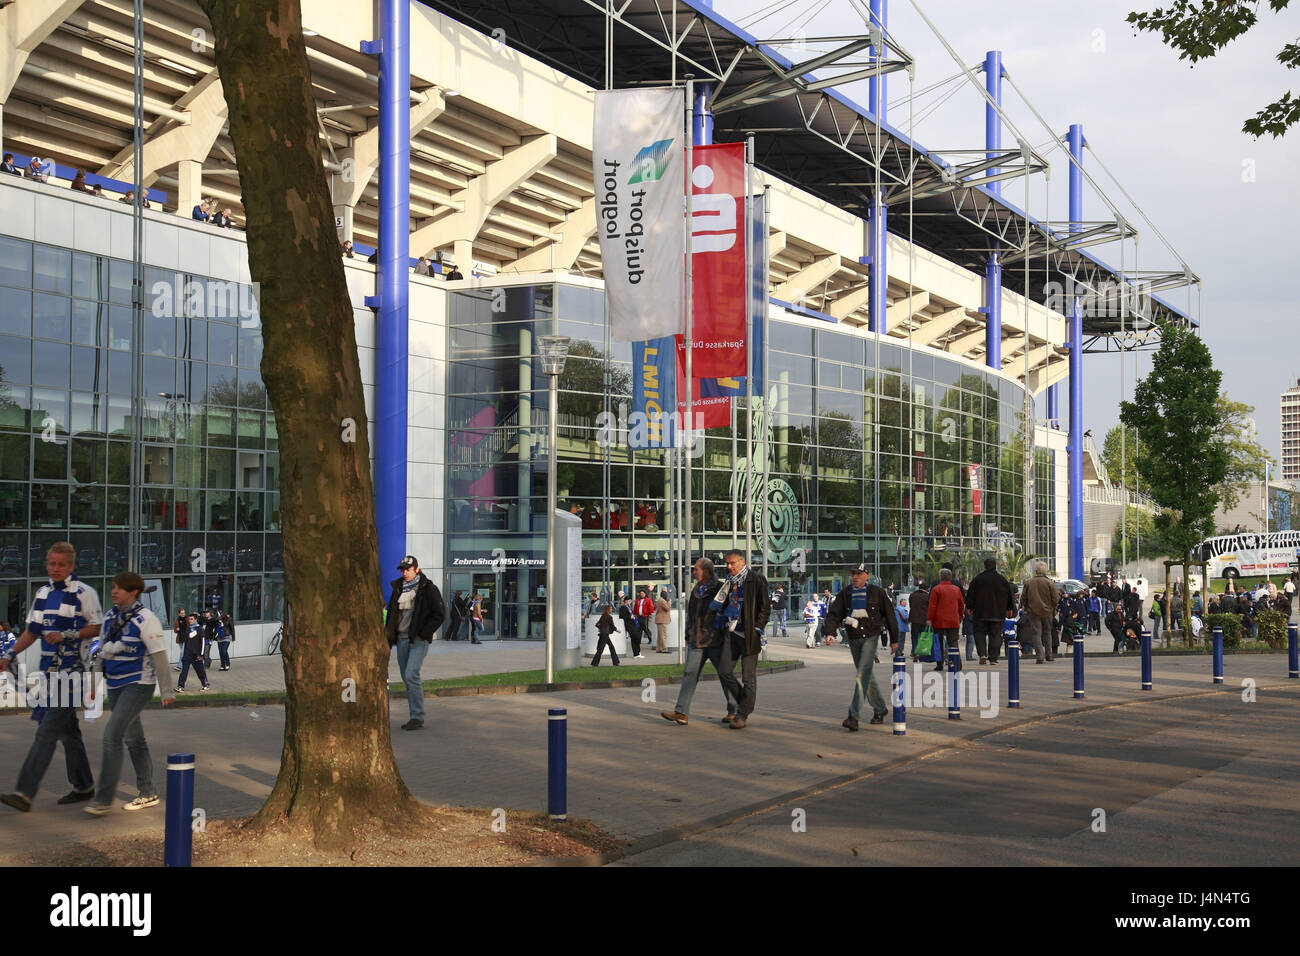 Germany, Duisburg, MSV arena, passer-by, - Stock Image